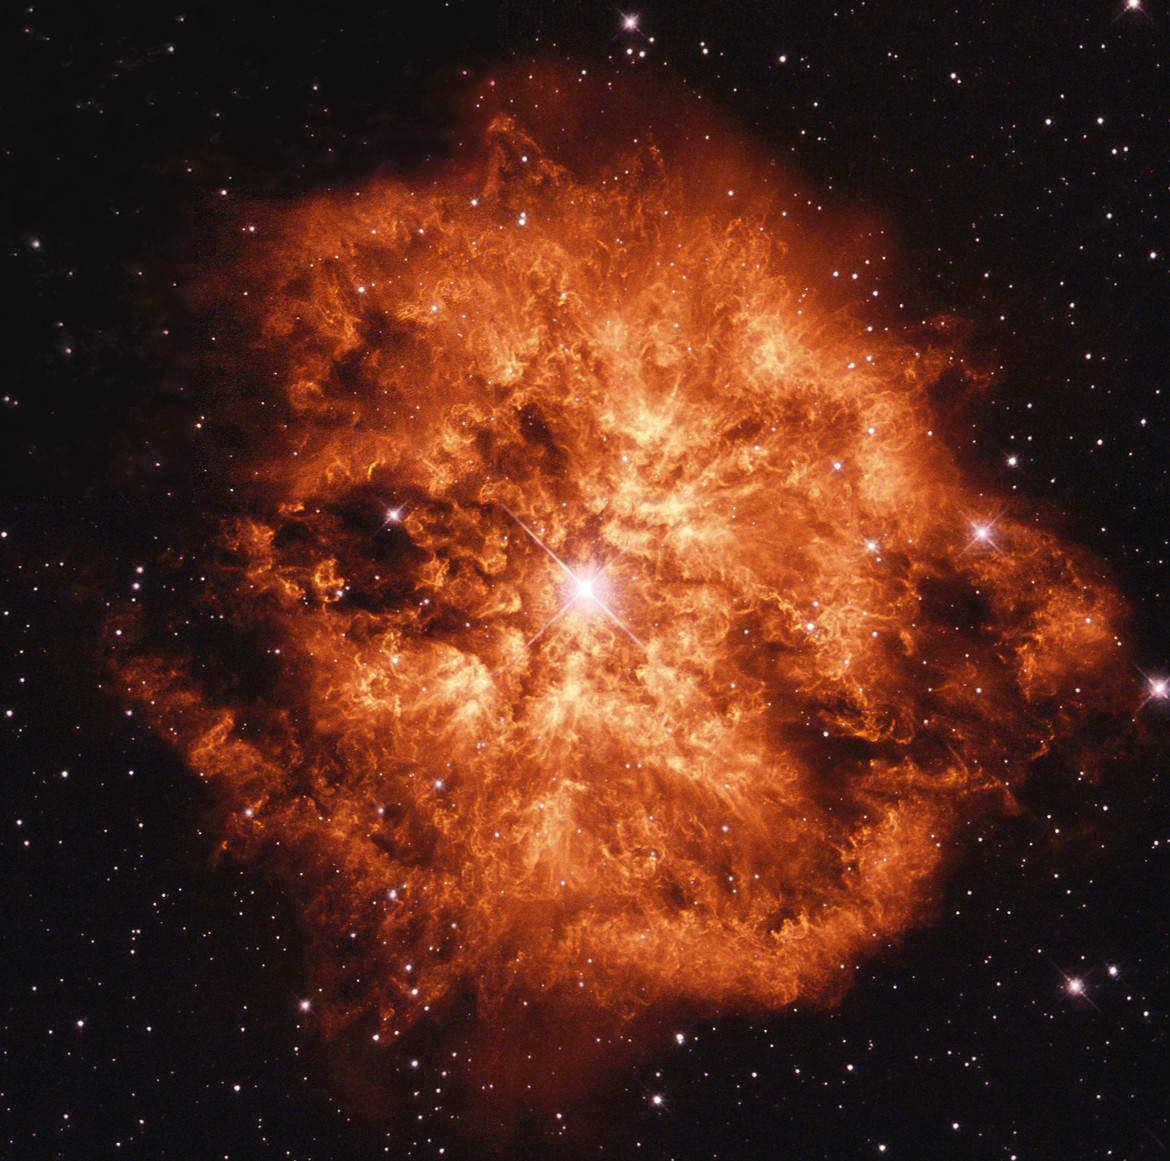 The huge nebula M1-67 around the Wolf-Rayet star WR124. Credit: ESA/Hubble & NASA / Judy Schmidt